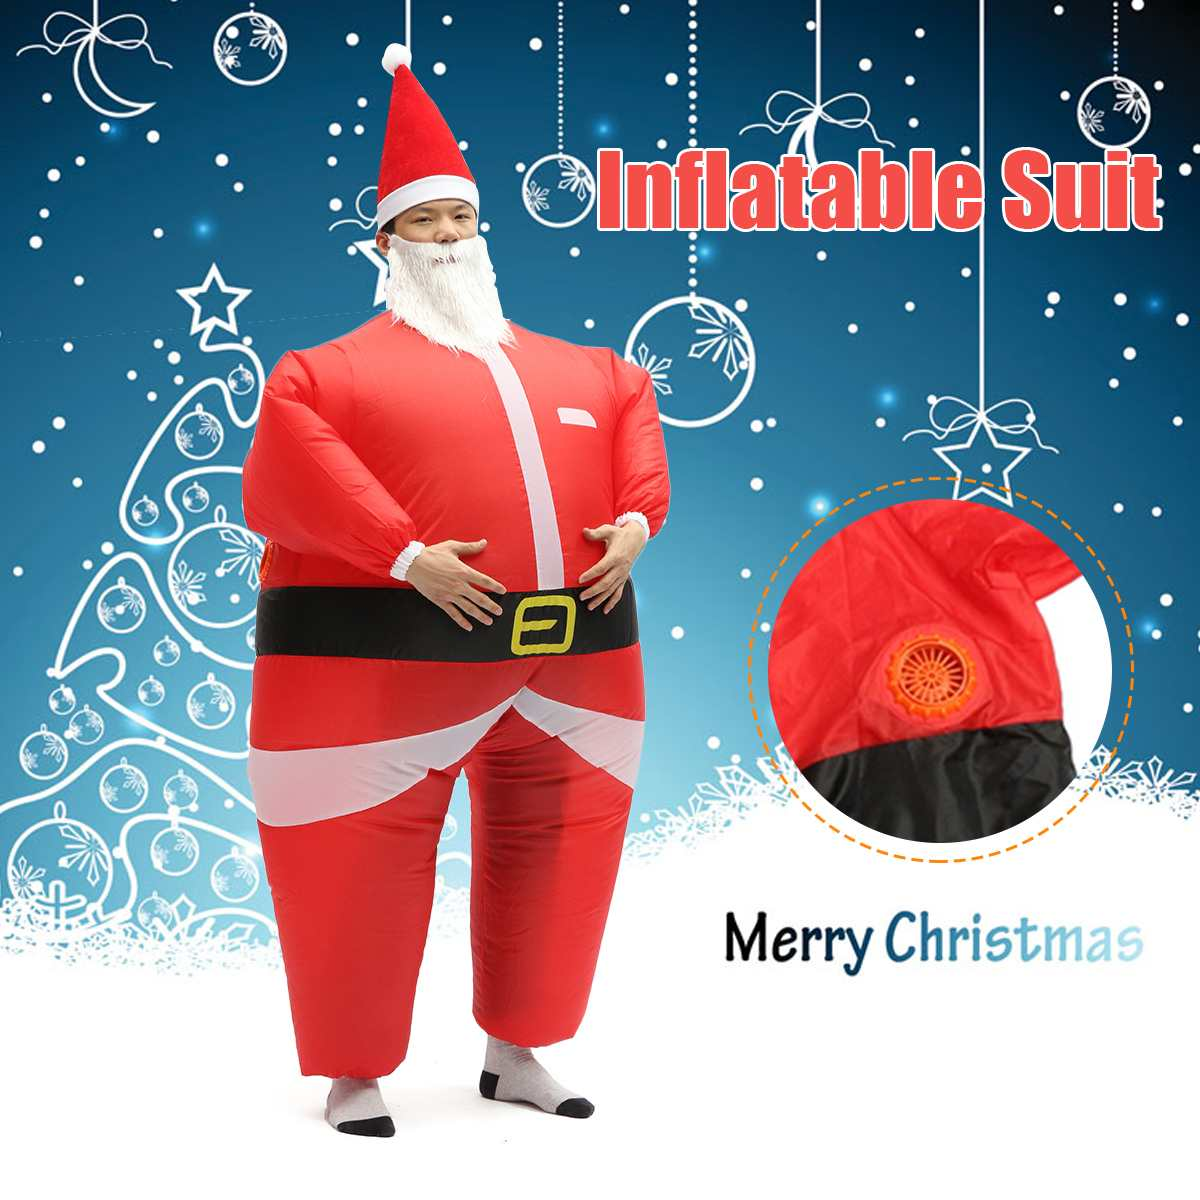 Adult Inflatable Santa Claus Blow Up Costume Fancy Party Dress Suit Outfit Red Suit Santa For Christmas